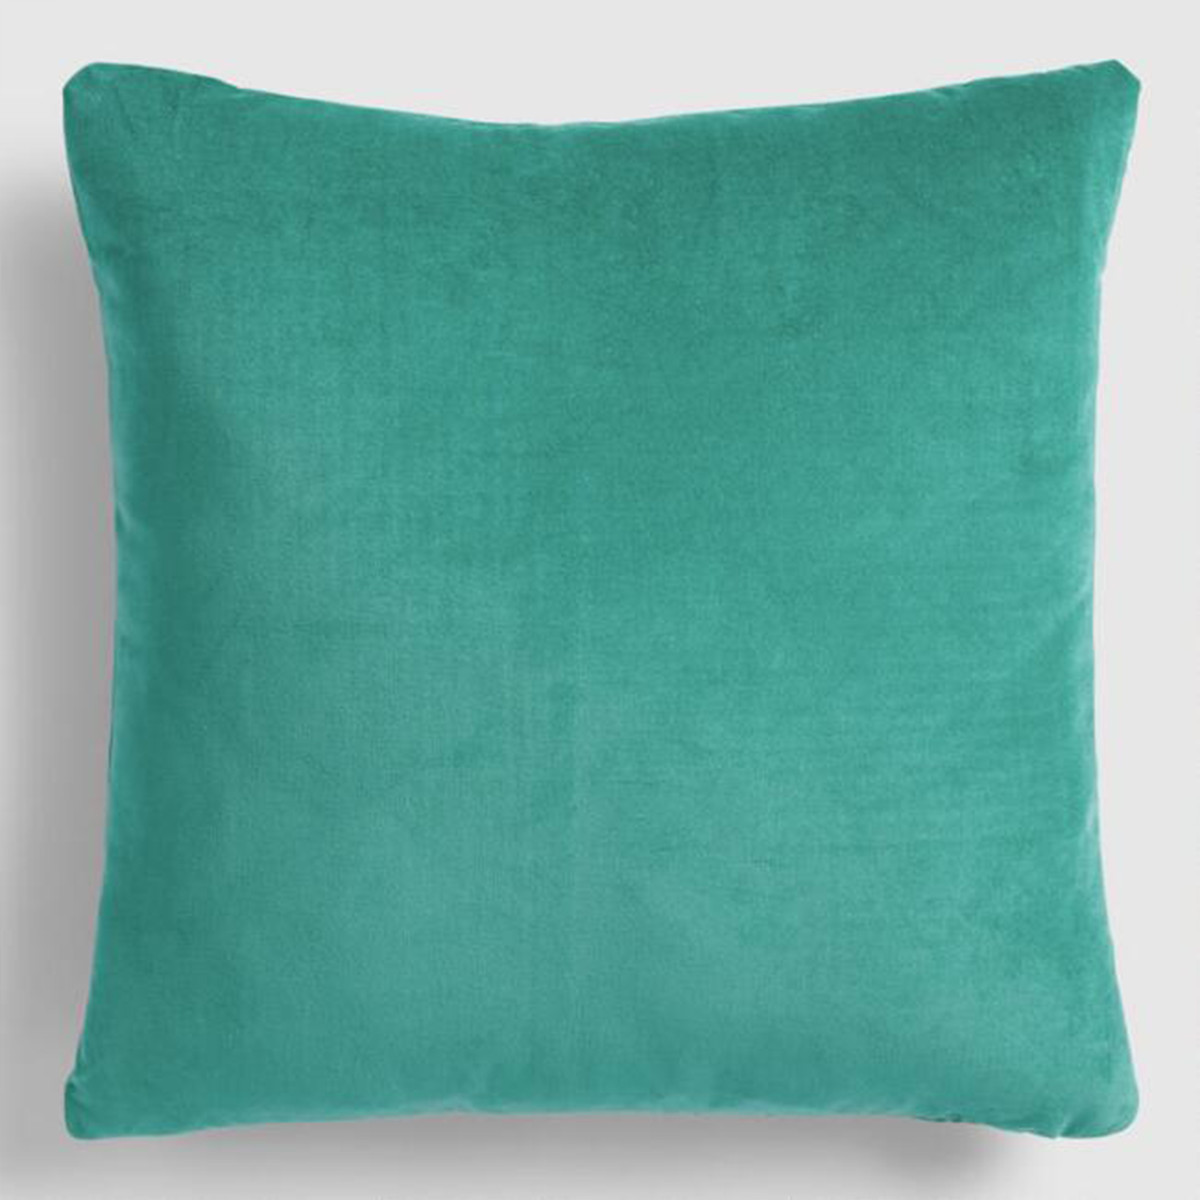 Made with a cotton velvet, it's a timeless accent you can toss onto your sofa or accent chair. photo